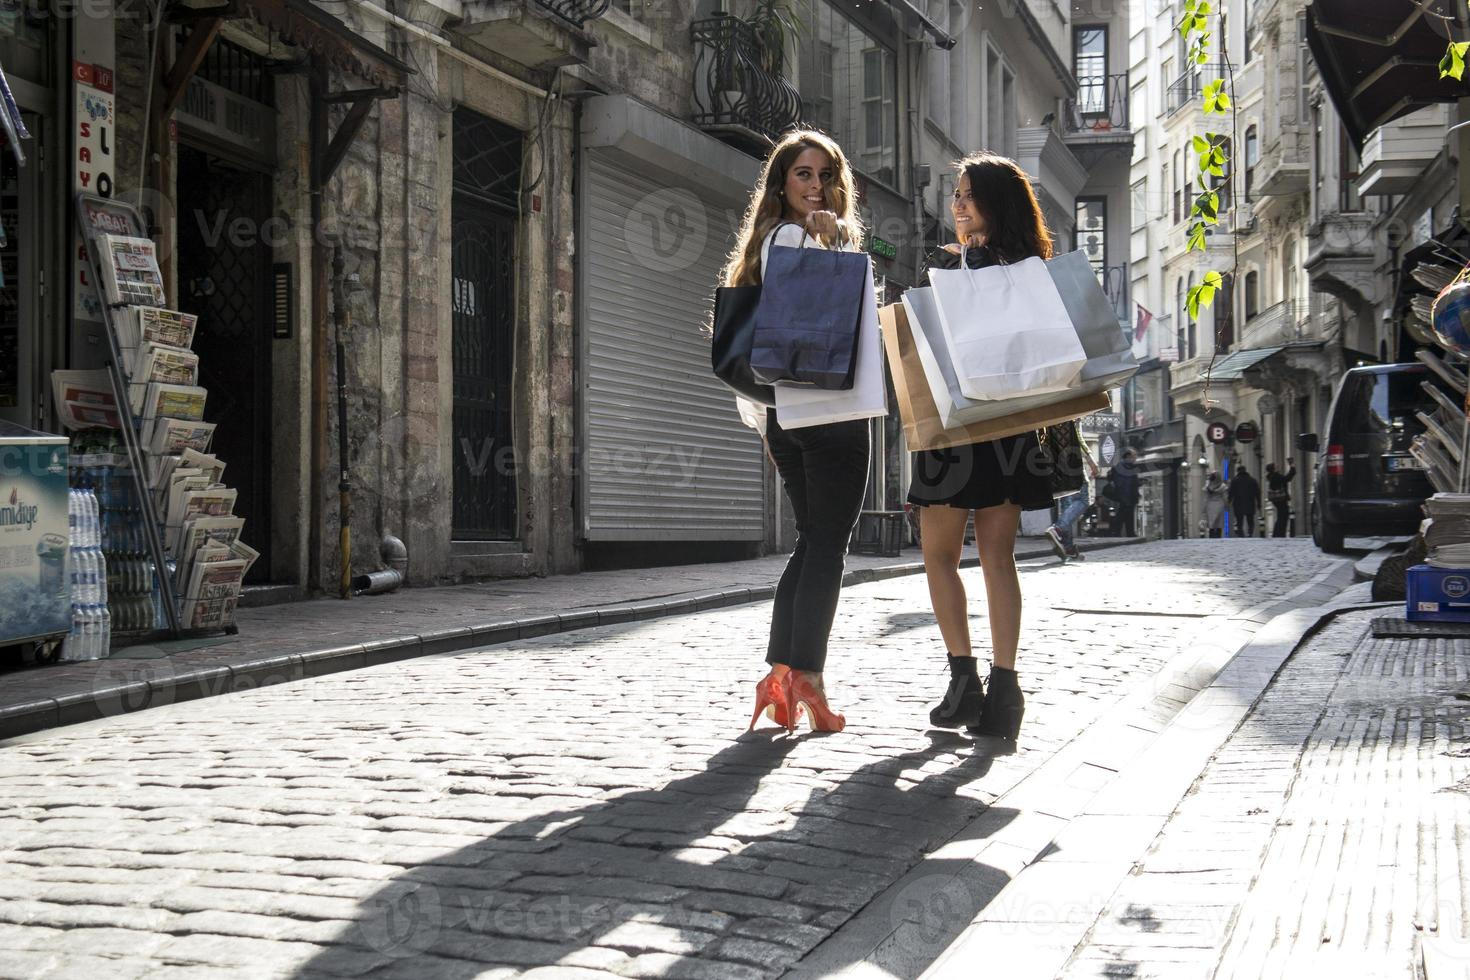 Two Girls in Shopping at the street photo